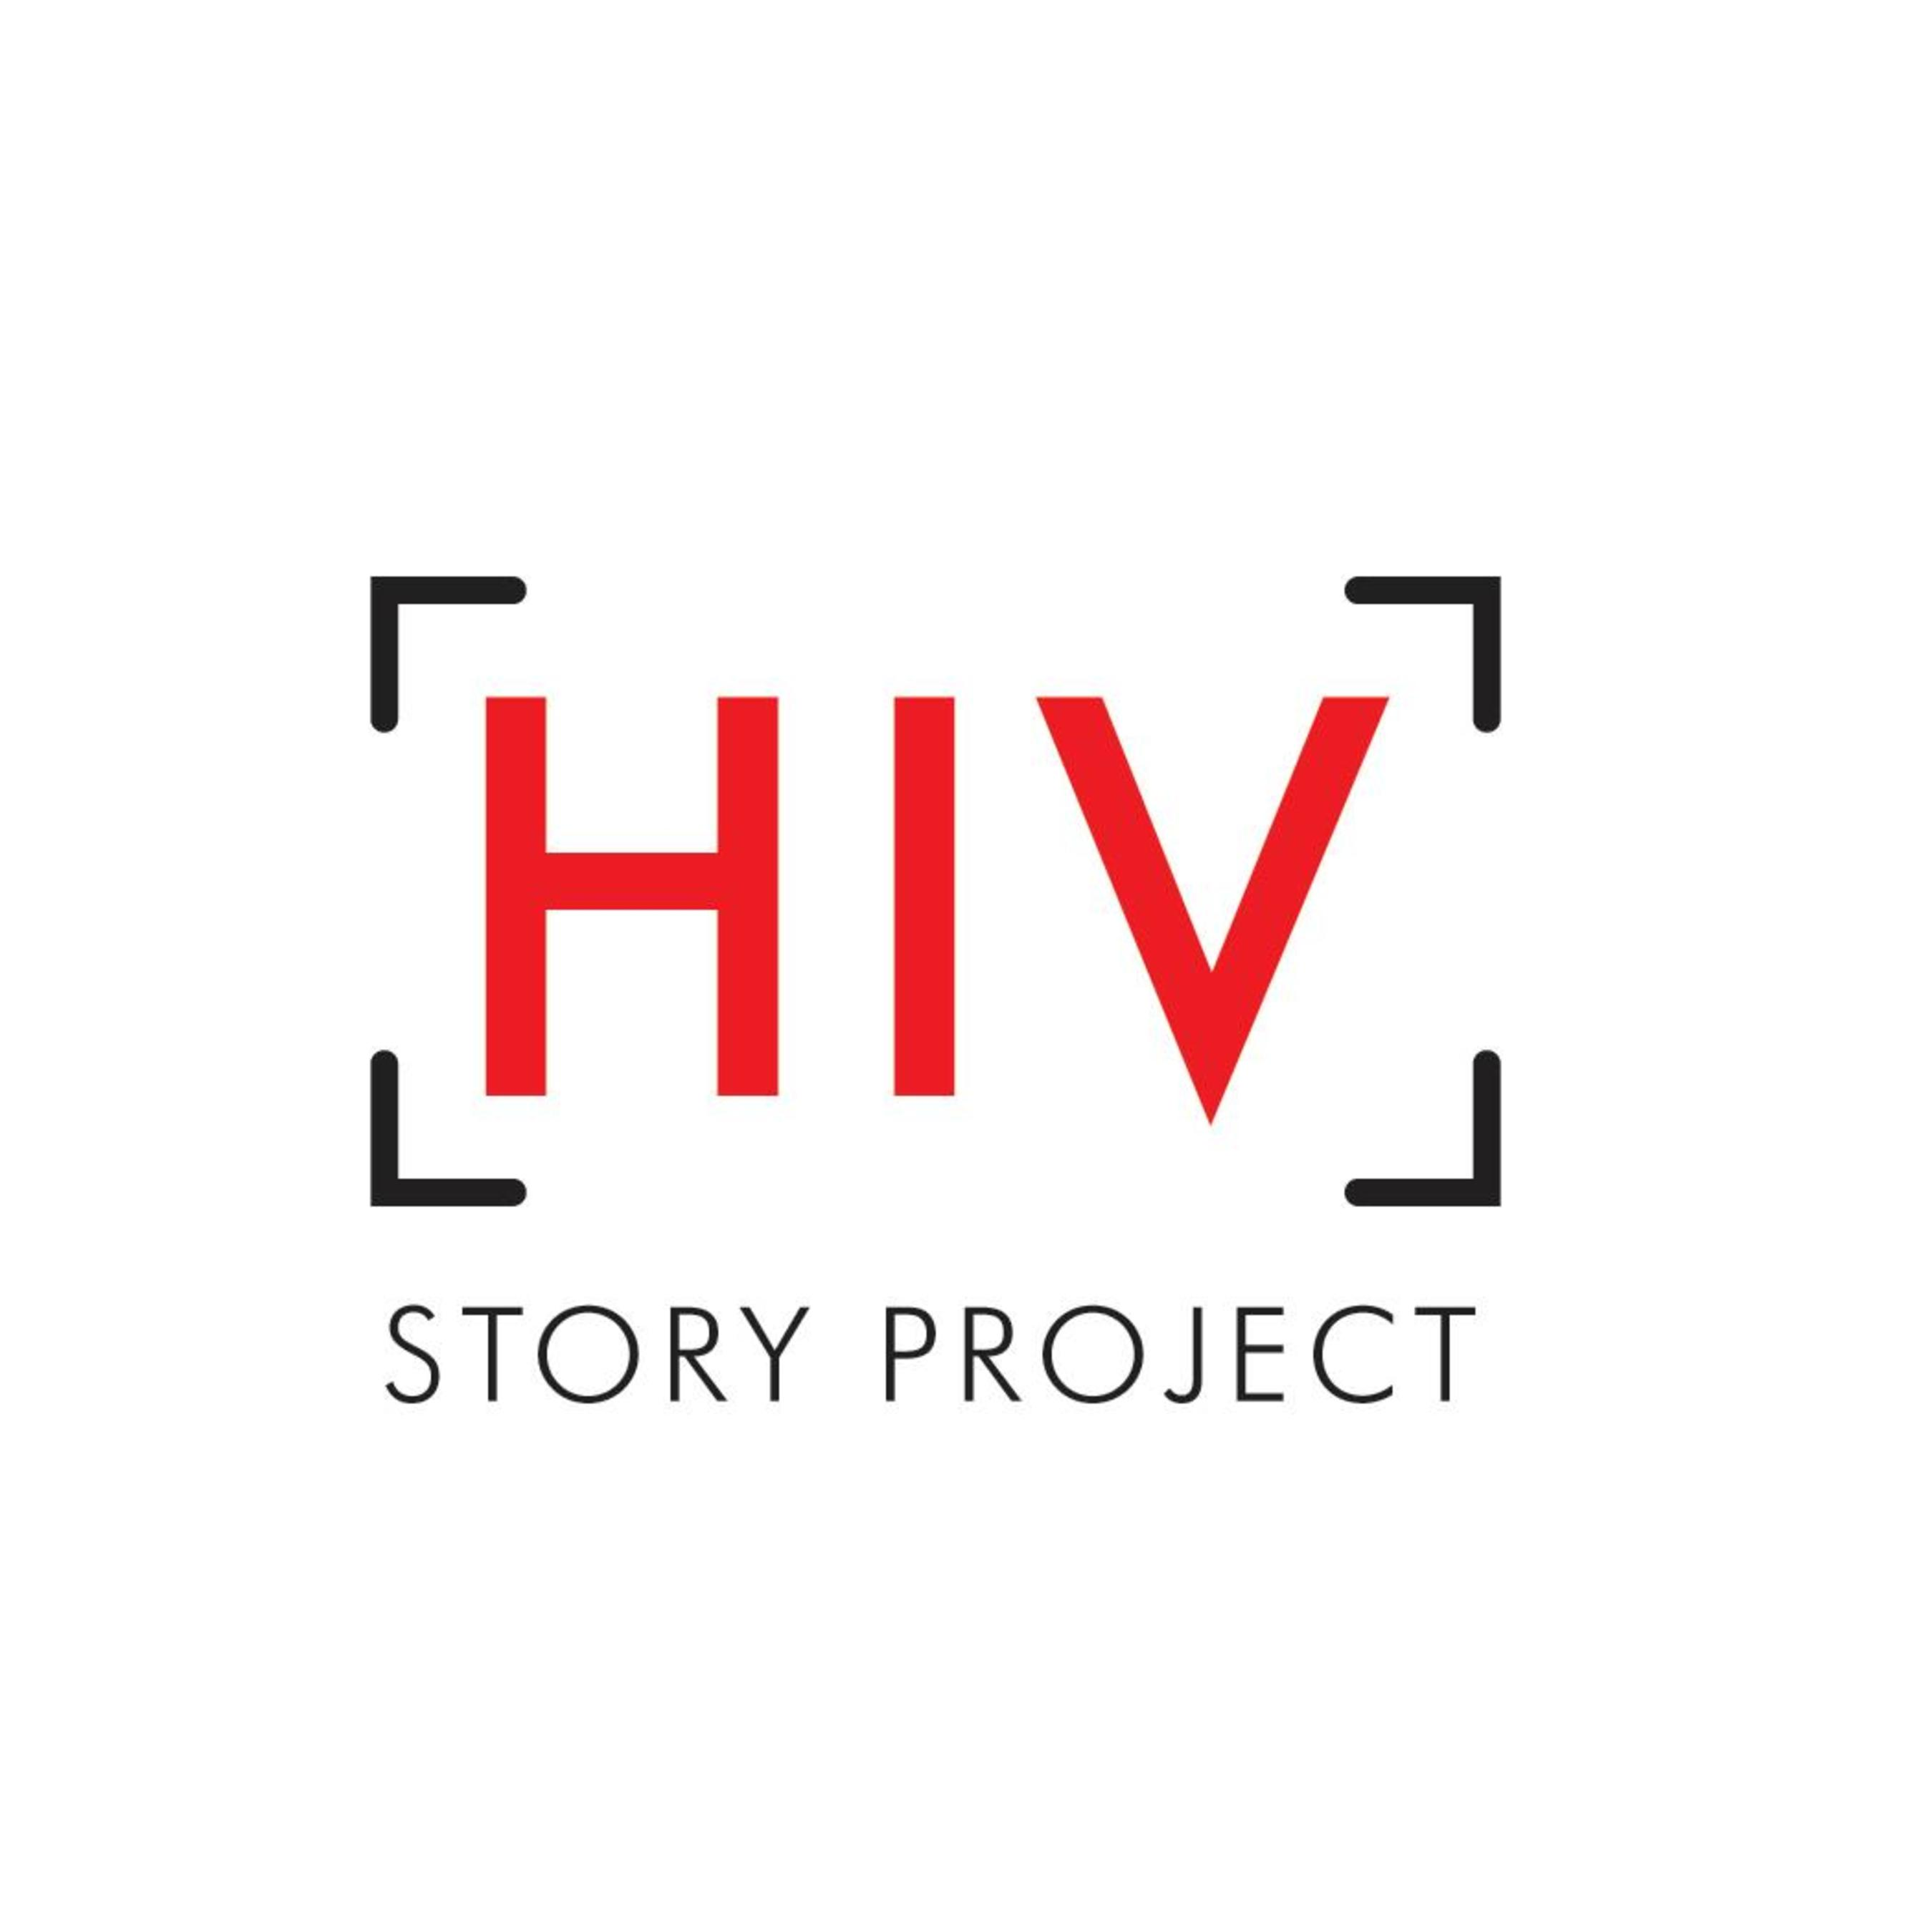 The HIV Story Project Launches Generations HIV Online Video Archive